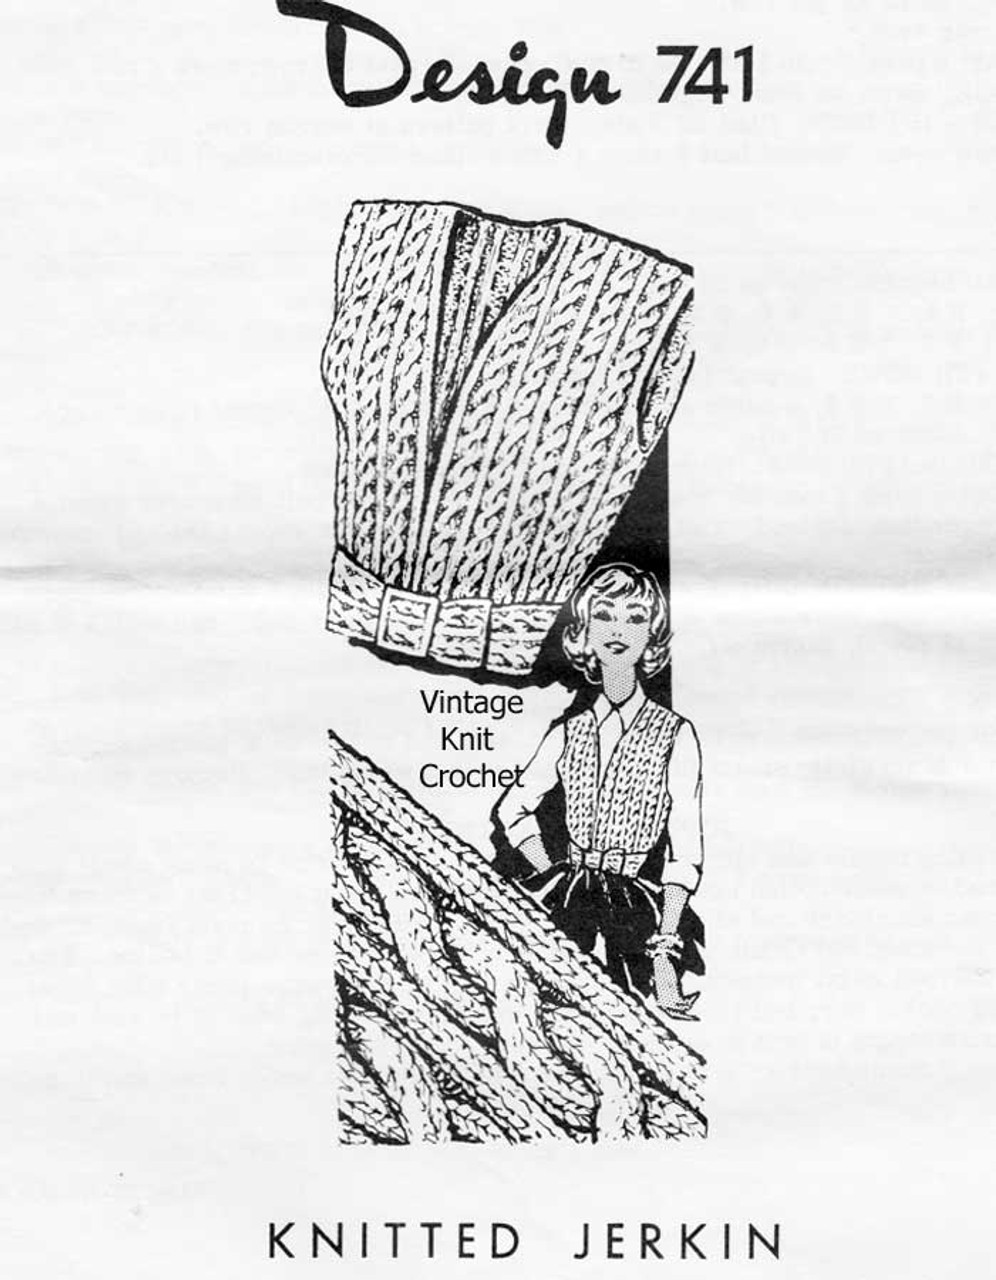 Knitted Cable Vest Pattern, Mail Order Design 741